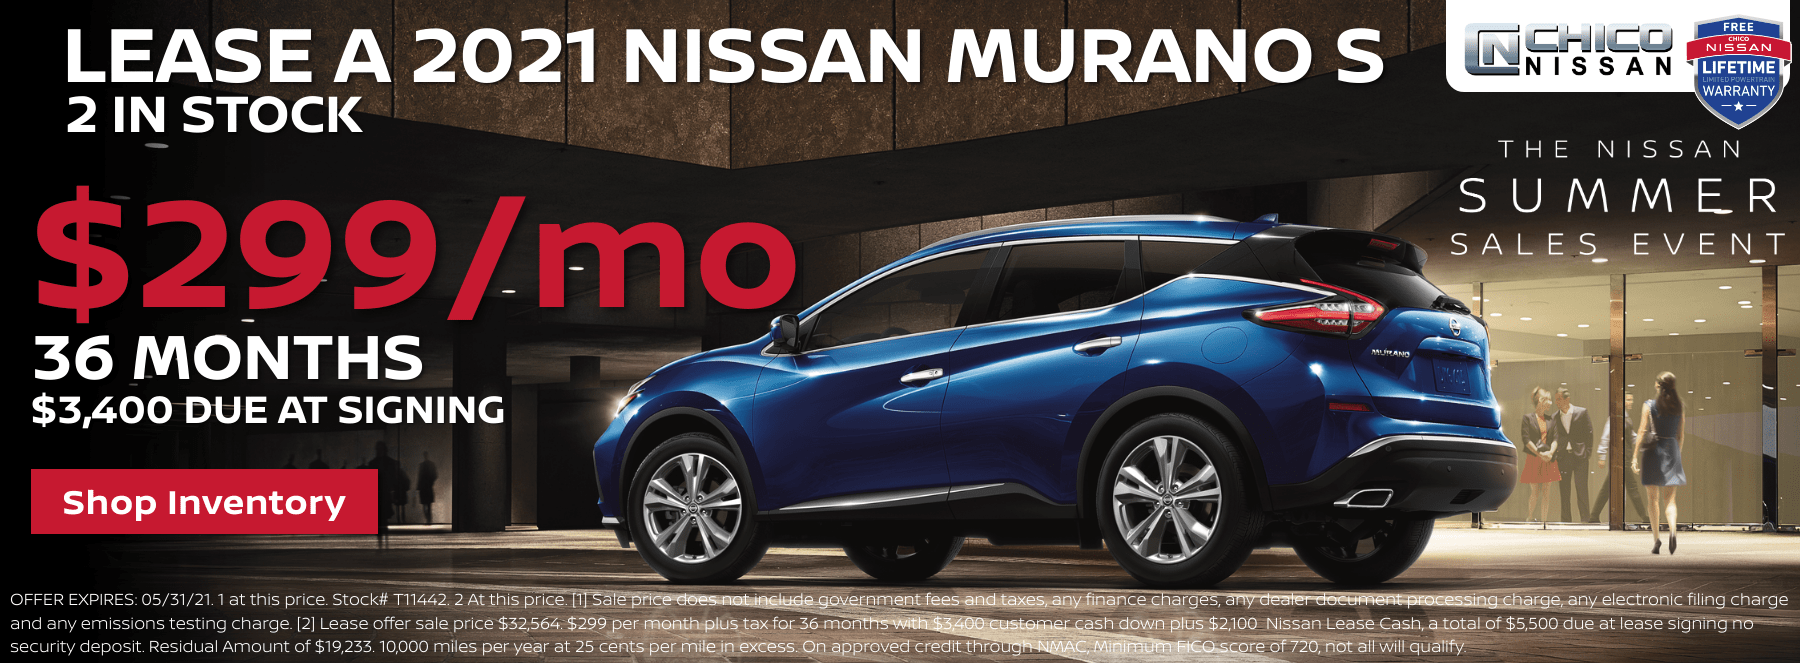 Murano Lease-1800x663px